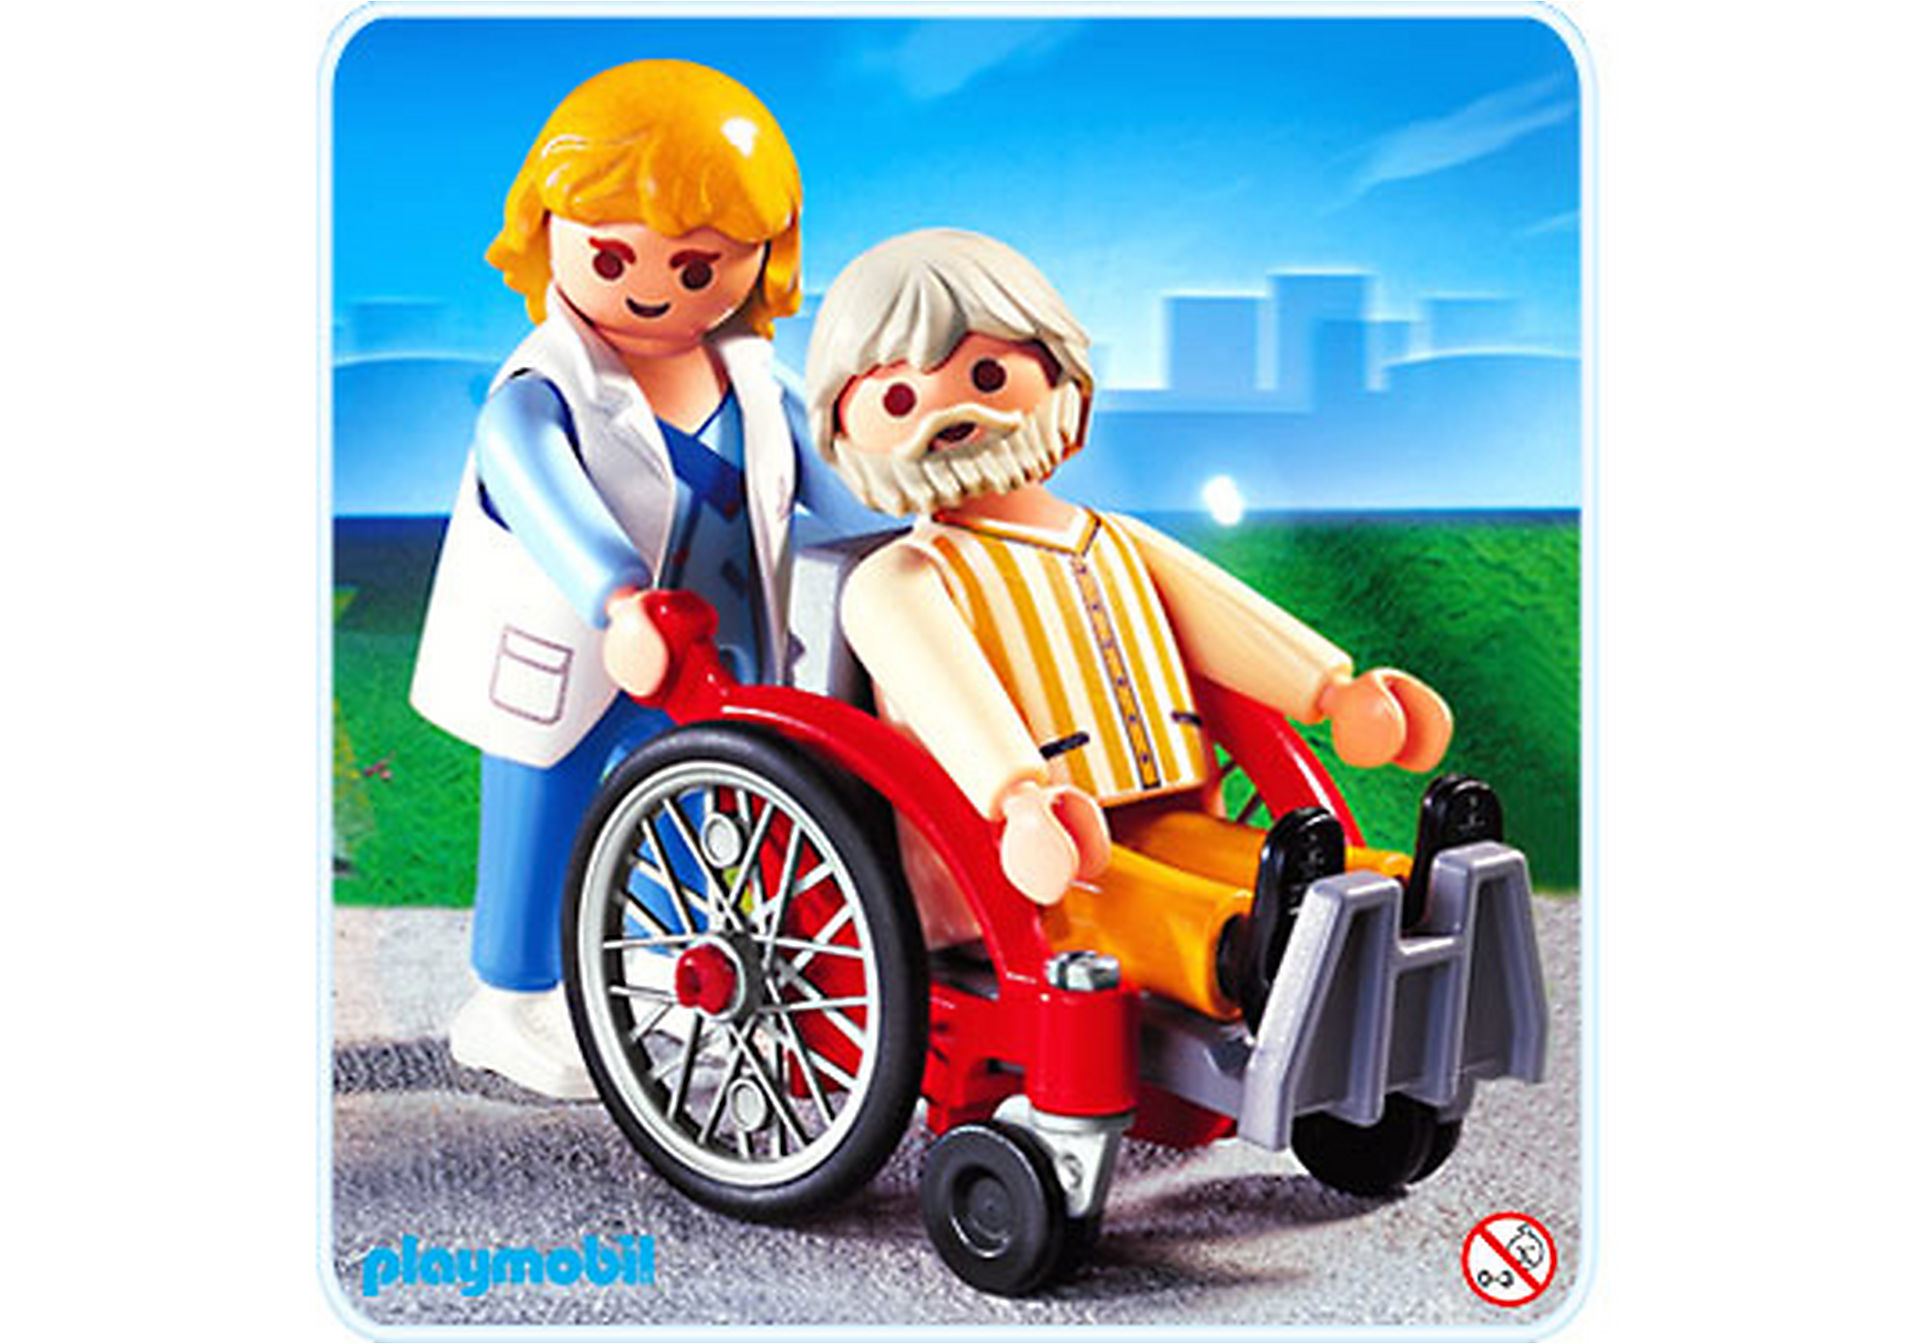 http://media.playmobil.com/i/playmobil/4226-A_product_detail/Pflegerin mit Patient